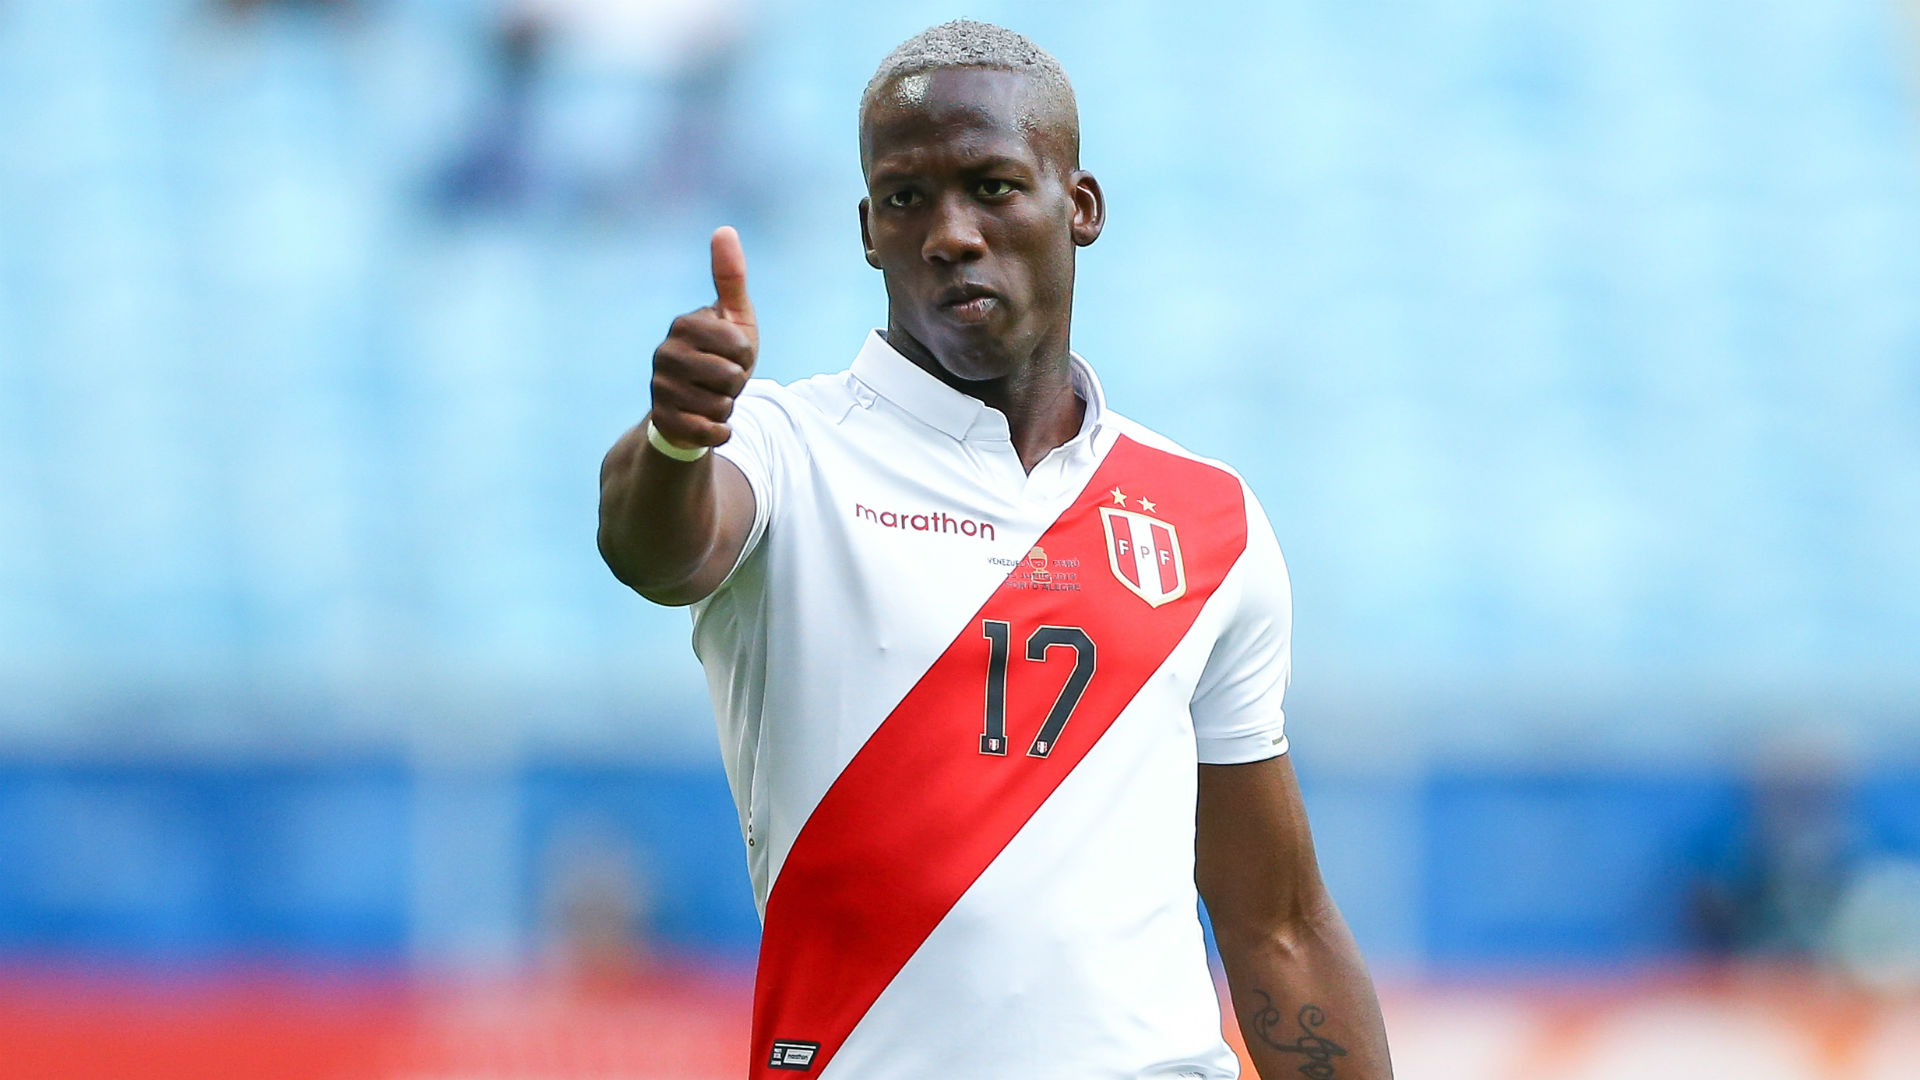 Peru vs Brazil Betting Tips: Latest odds, team news, preview and